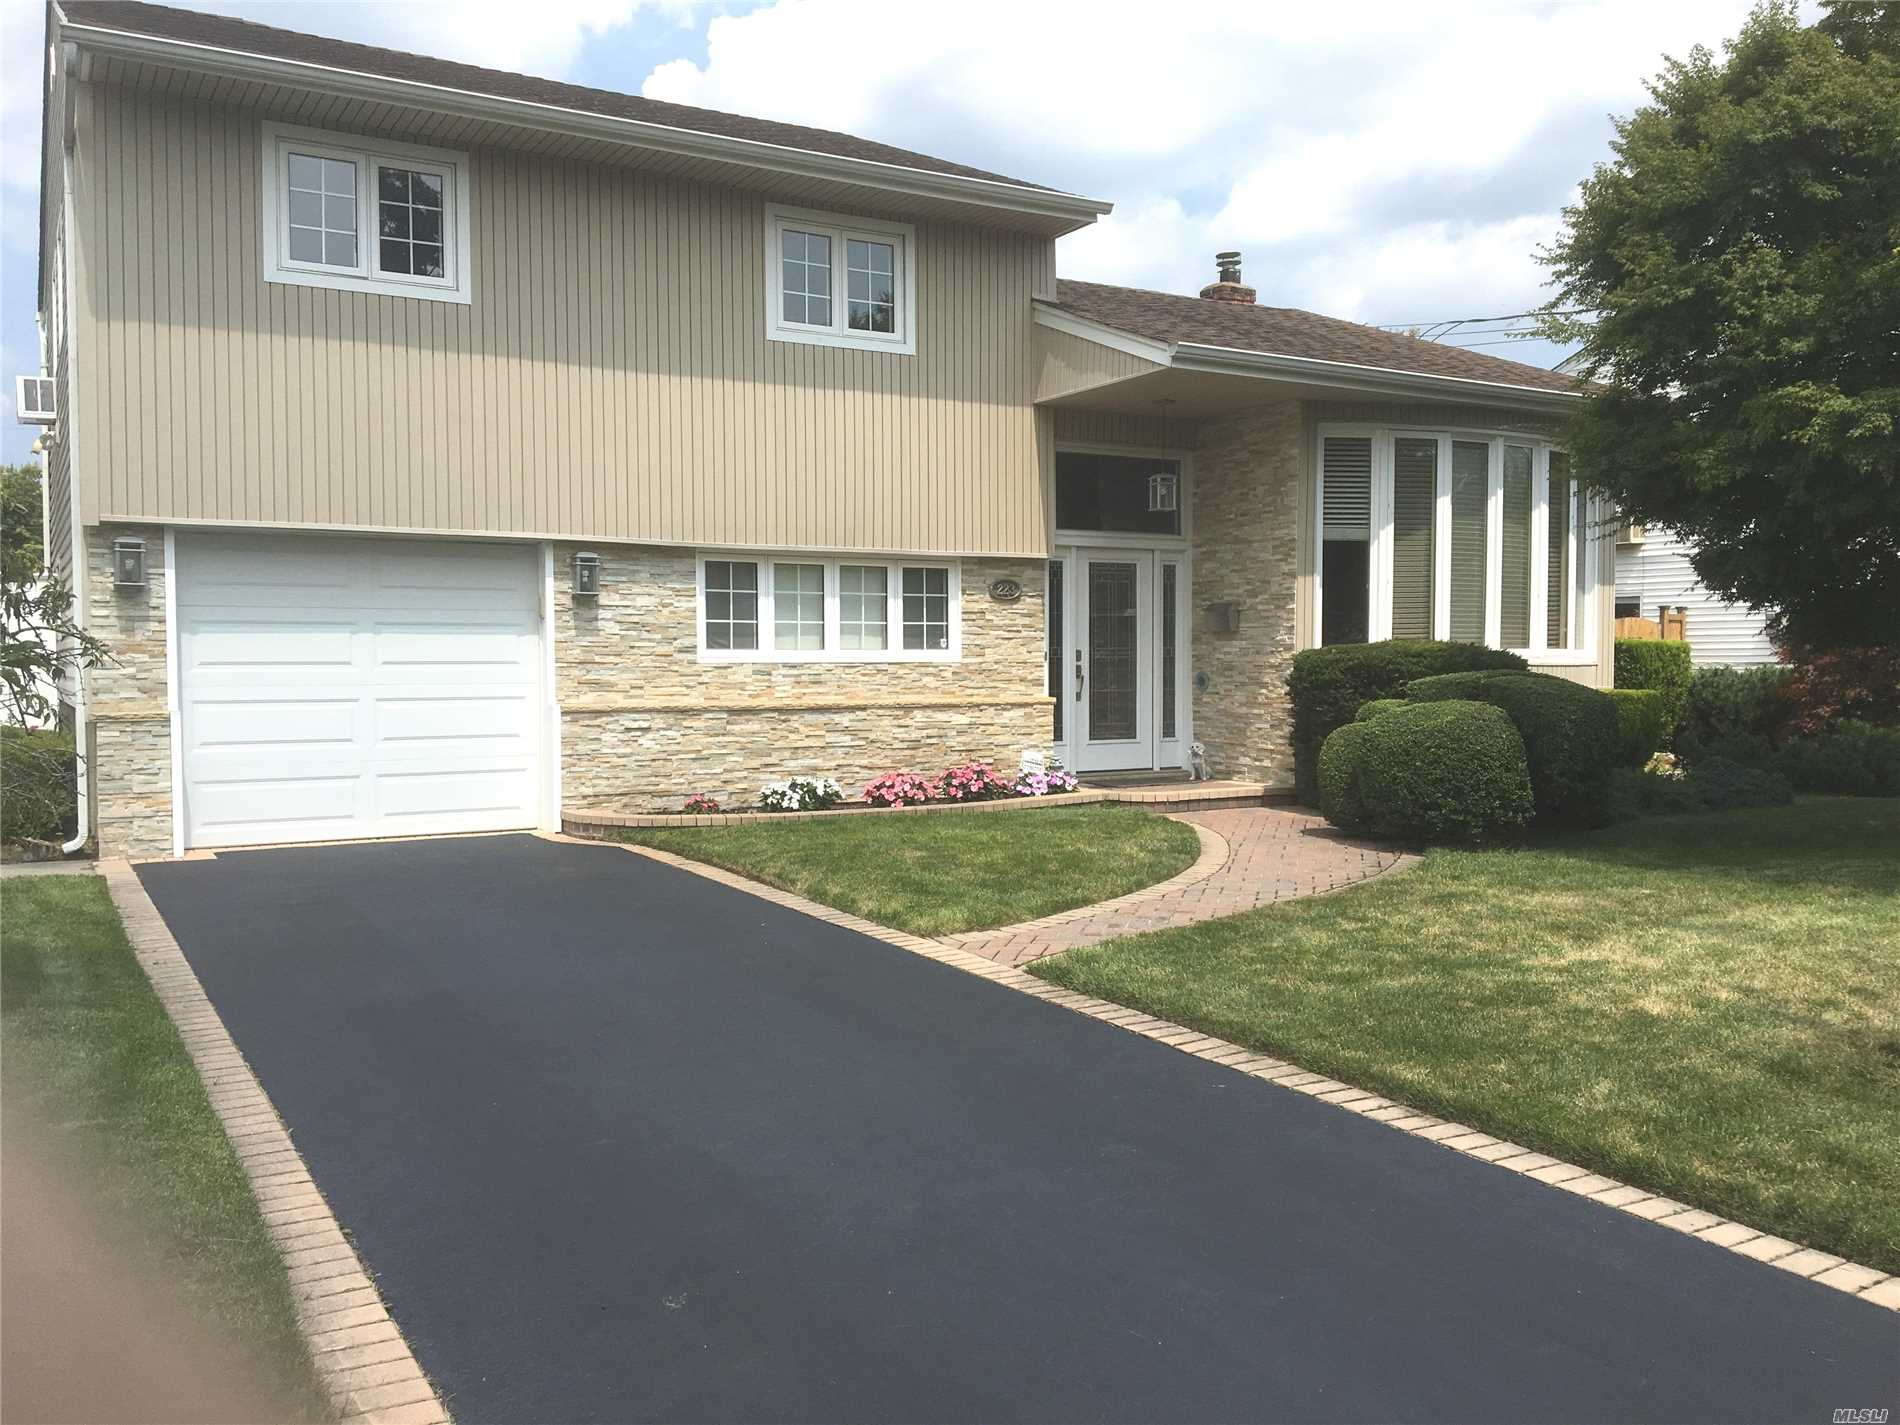 Great Updated Split With, New Stone Front/Siding, New Front Door/Window, New Main Bath, New Cac, Gas Tank Less Hot Water, Garage Door/Opener.Updated Kitchen/Sliding Doors, Windows, 2nd Bath, Crown Molding, S/S Appliances, Blacktop Driveway, Nice Layout, Low Taxes, Come See!